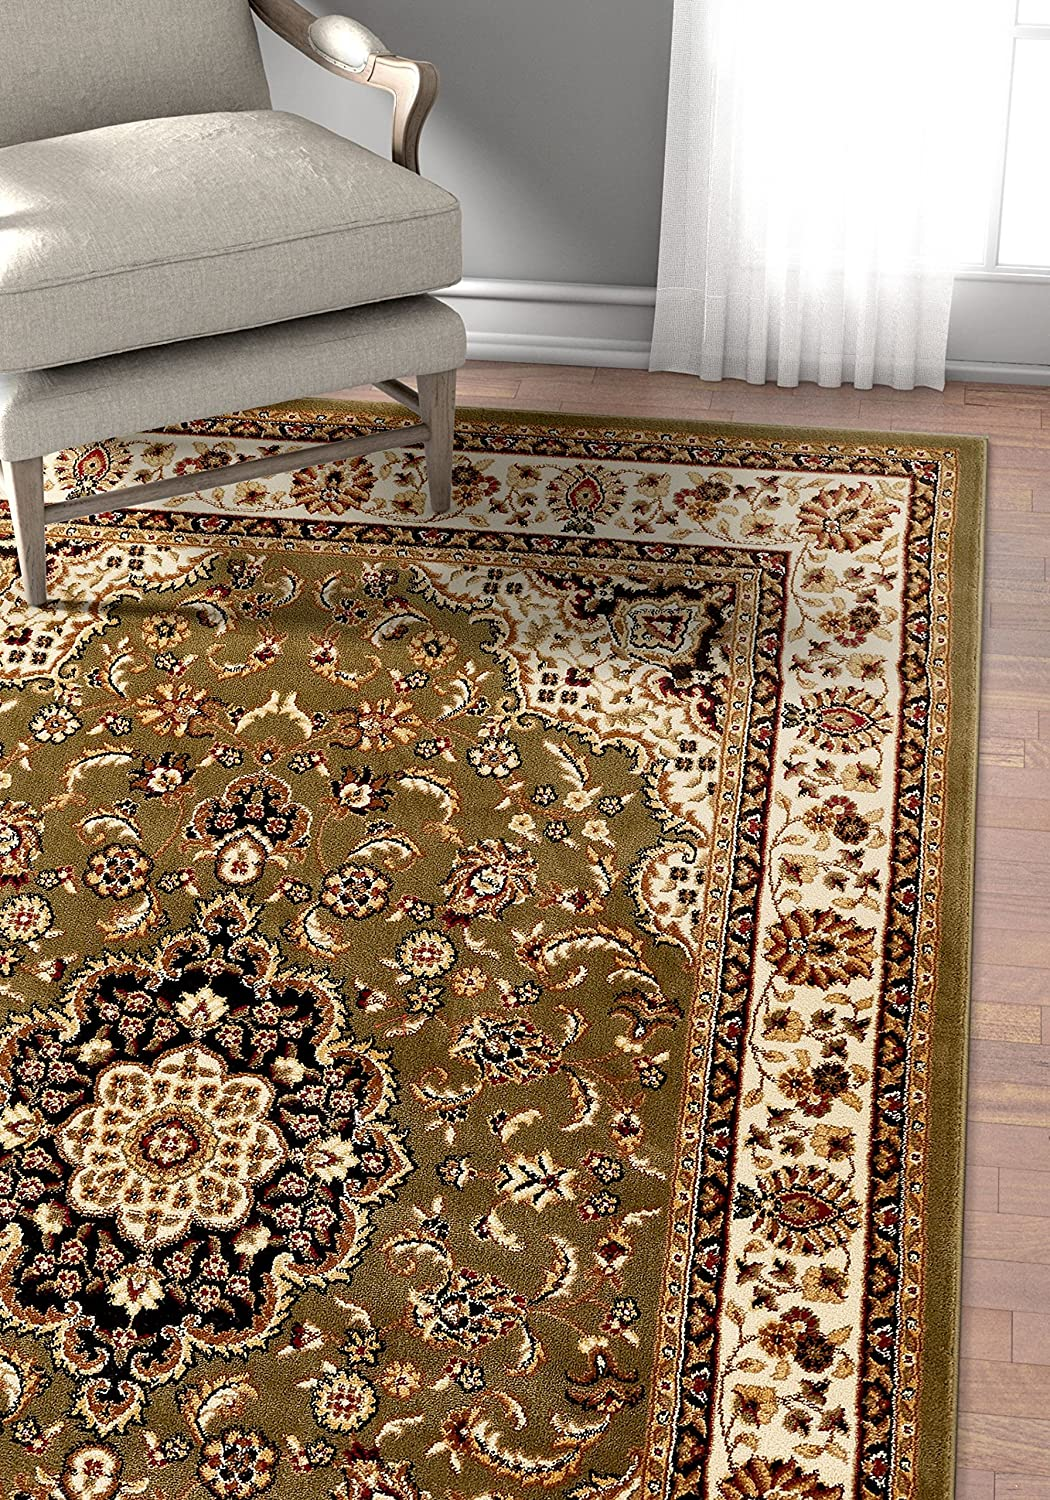 Well Woven Barclay Medallion Kashan Red Traditional Area Rug 2'3 X 3'11 Well Woven --DROPSHIP 541003